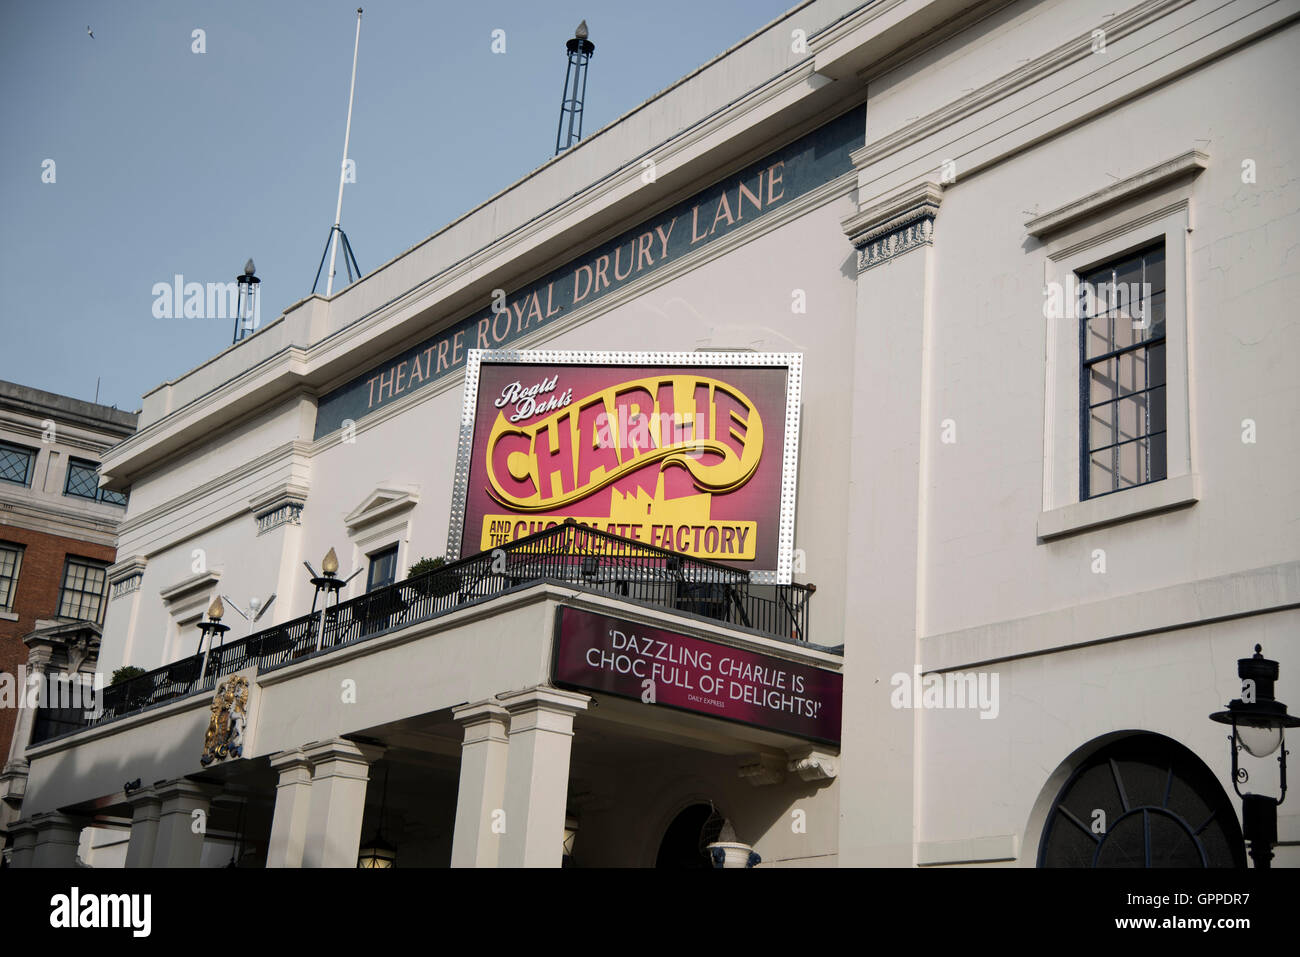 Theatre Royal Drury Lane Charlie and the  Chocolate Factory - Stock Image